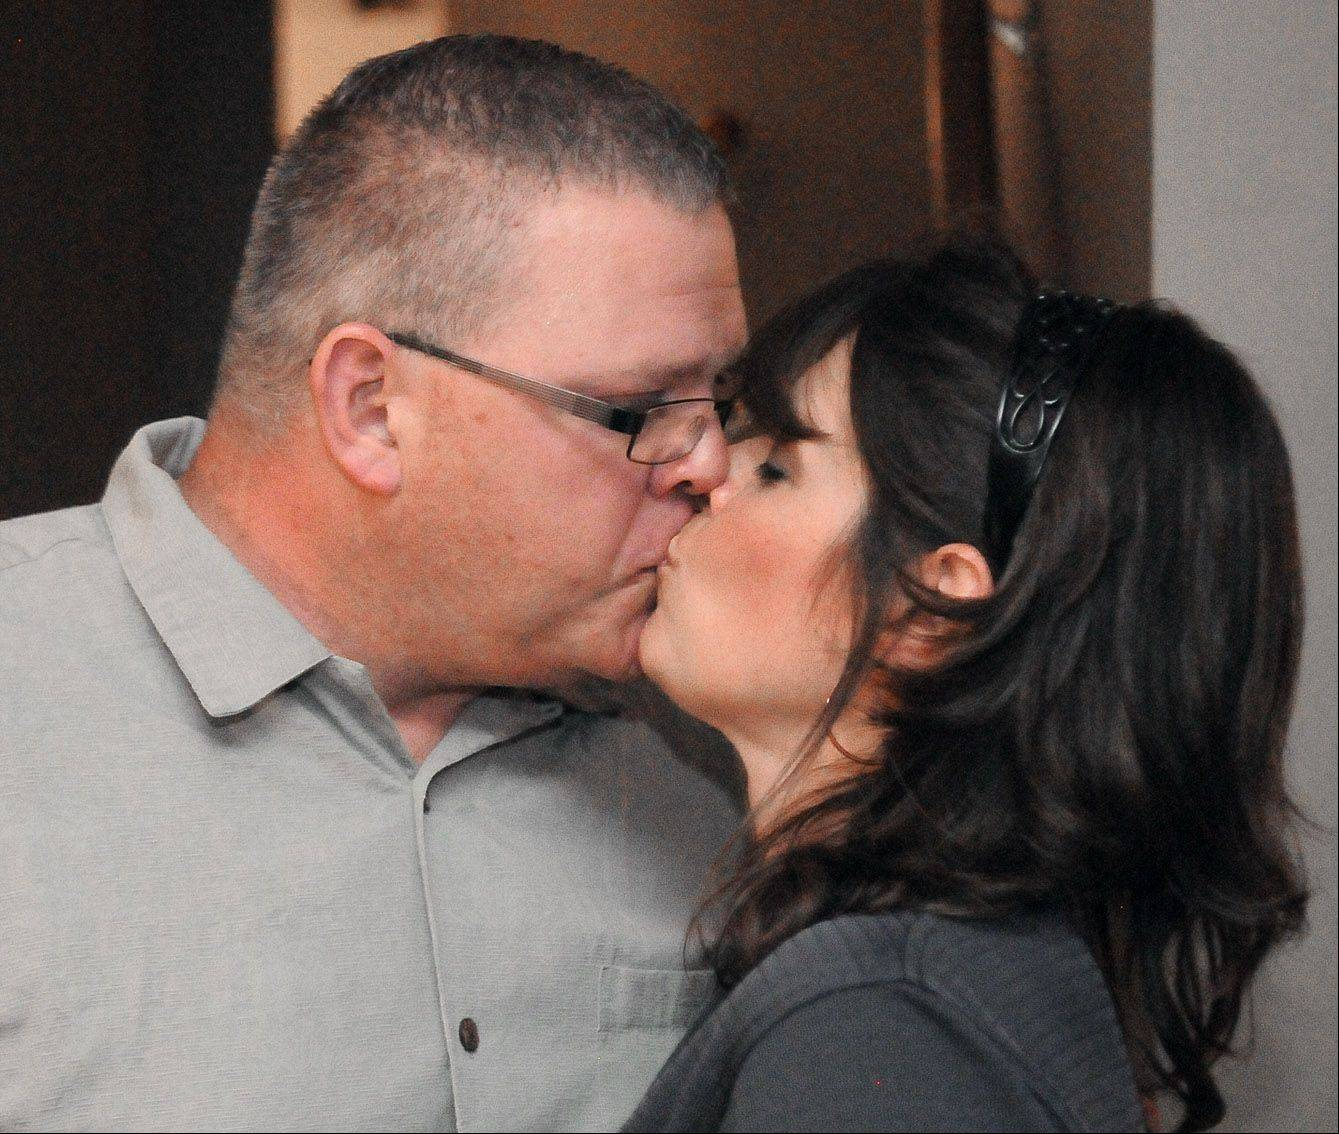 Laura Stoecker/lstoecker@dailyherald.comRepublican Kane County coroner candidate Rob Russell gives his wife, Susan, a kiss during his election night party at their South Elgin home on Tuesday. Russell had just announced to his family, friends, children and other supporters he was in the lead and was thankful to all of them for helping him during the election.